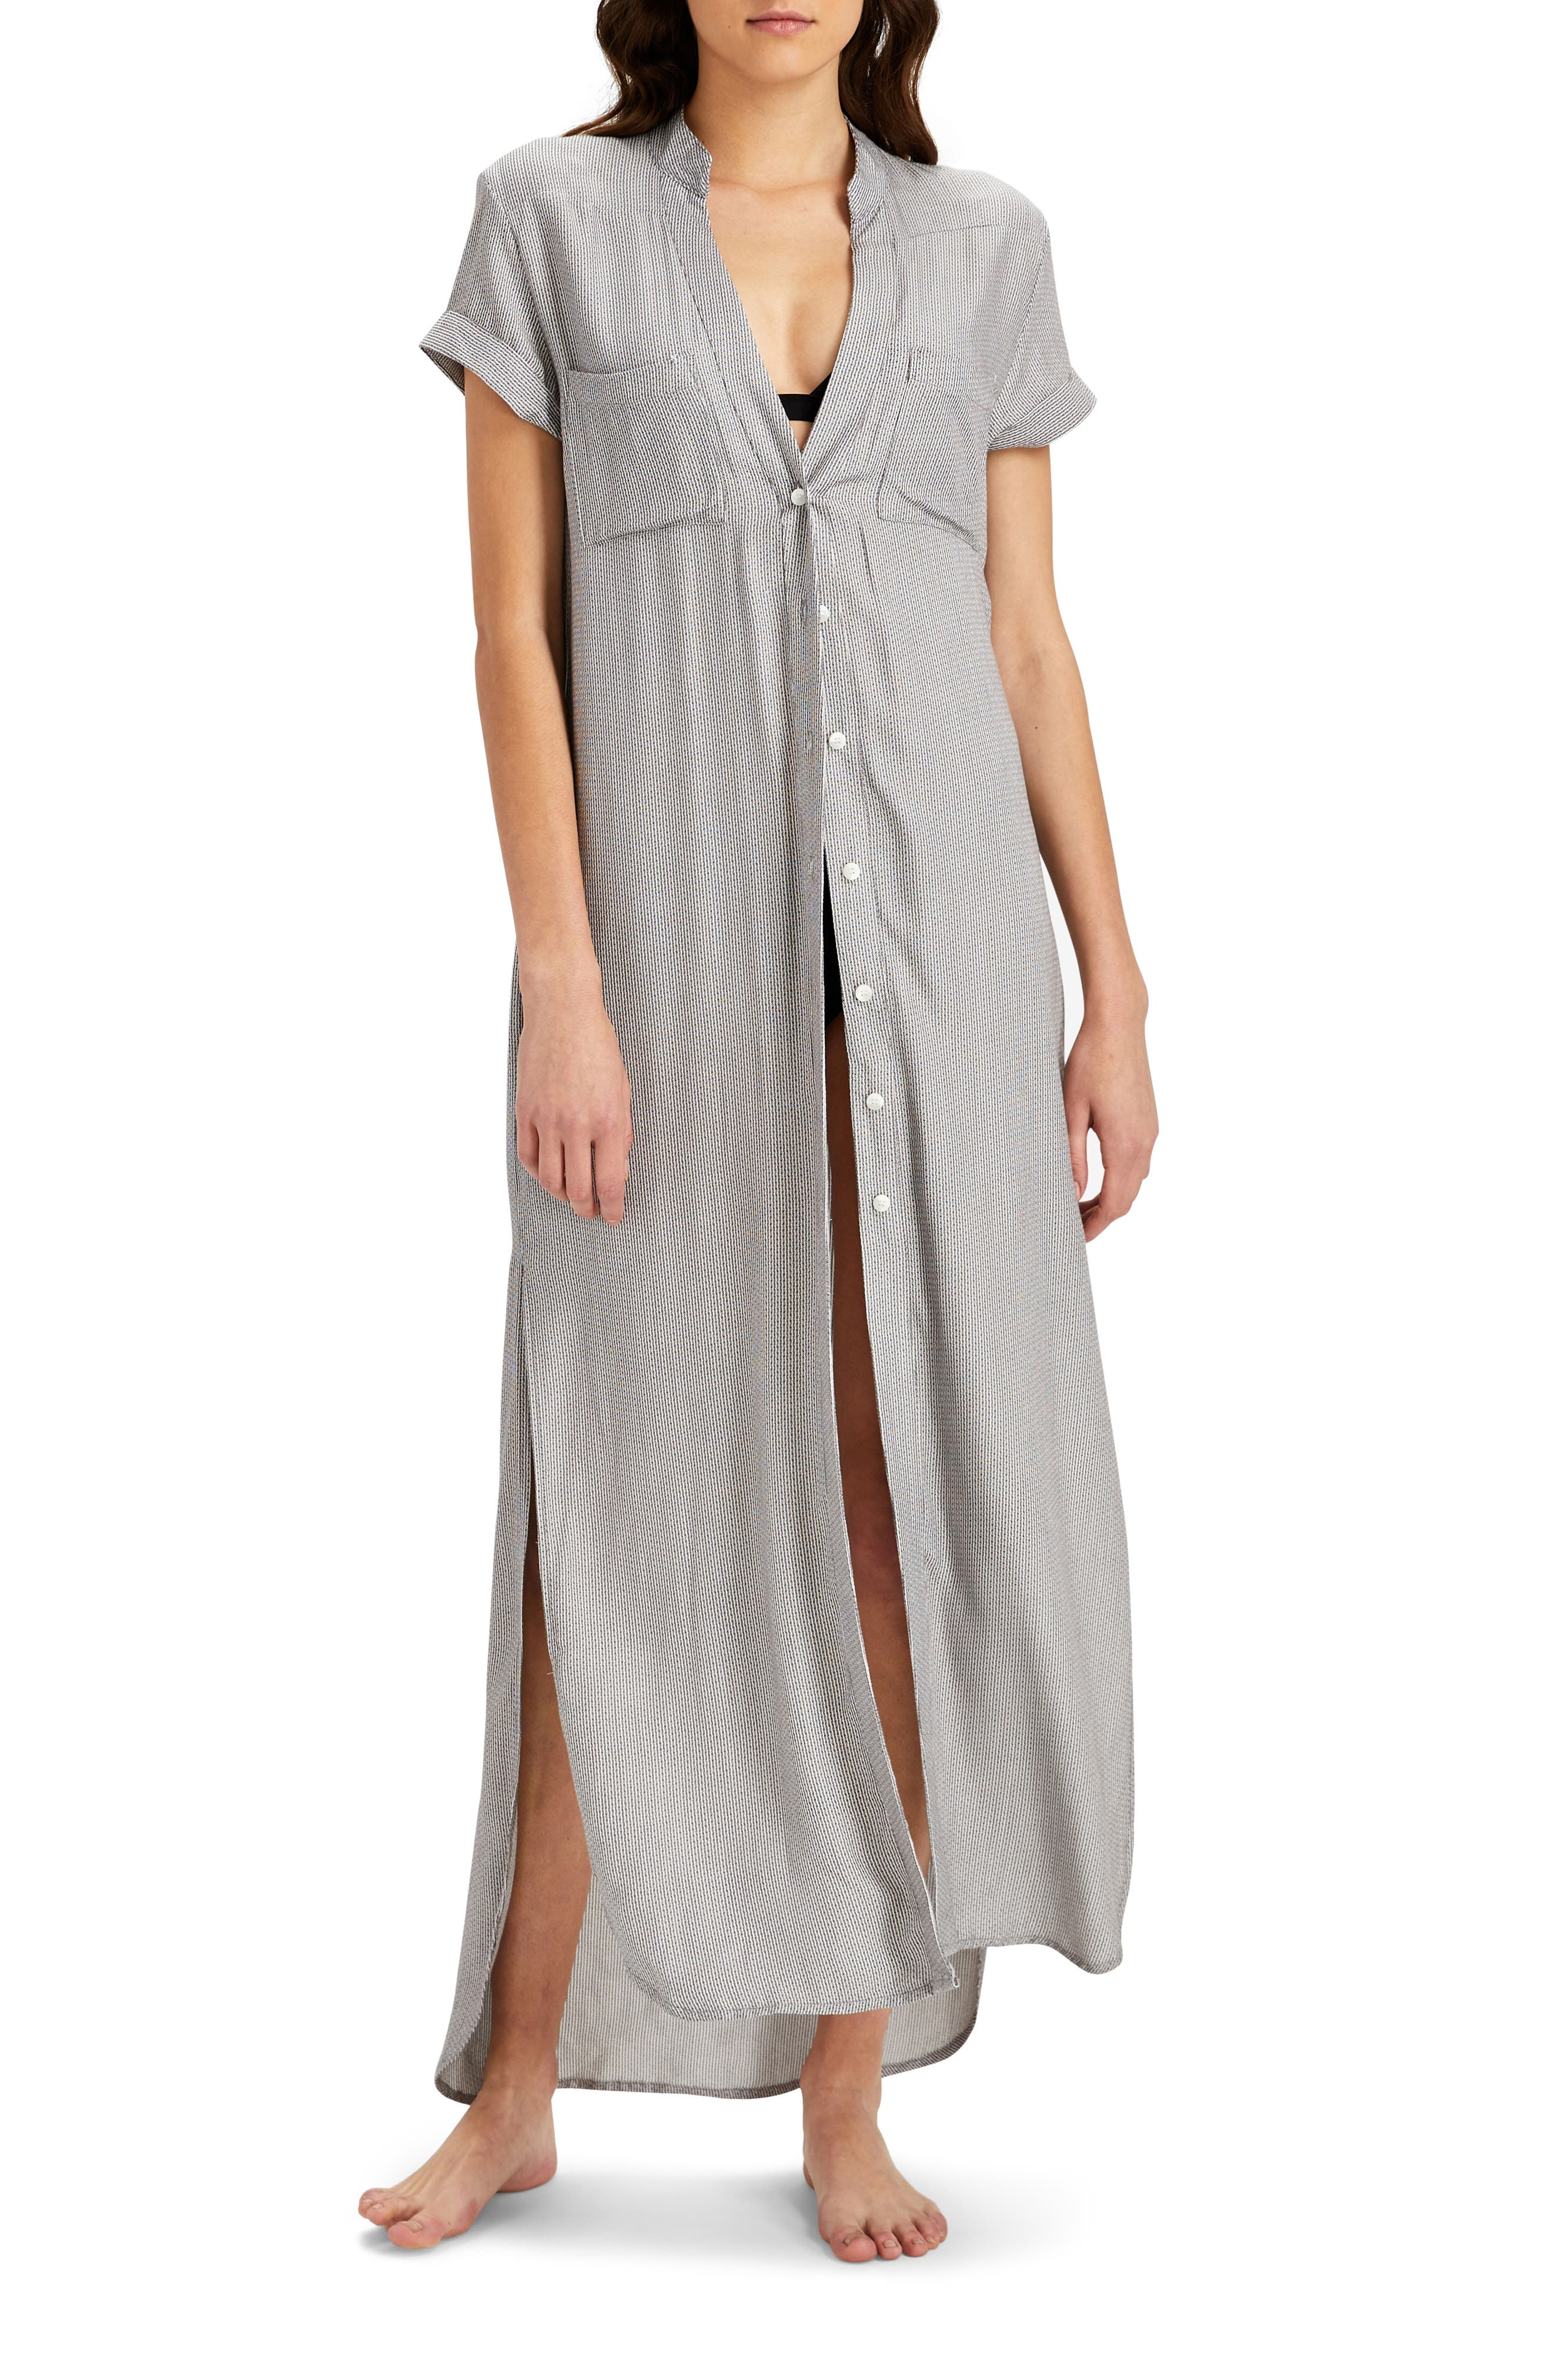 Kim Button Down Cover-Up Dress,                             Main thumbnail 1, color,                             Charcoal/ White